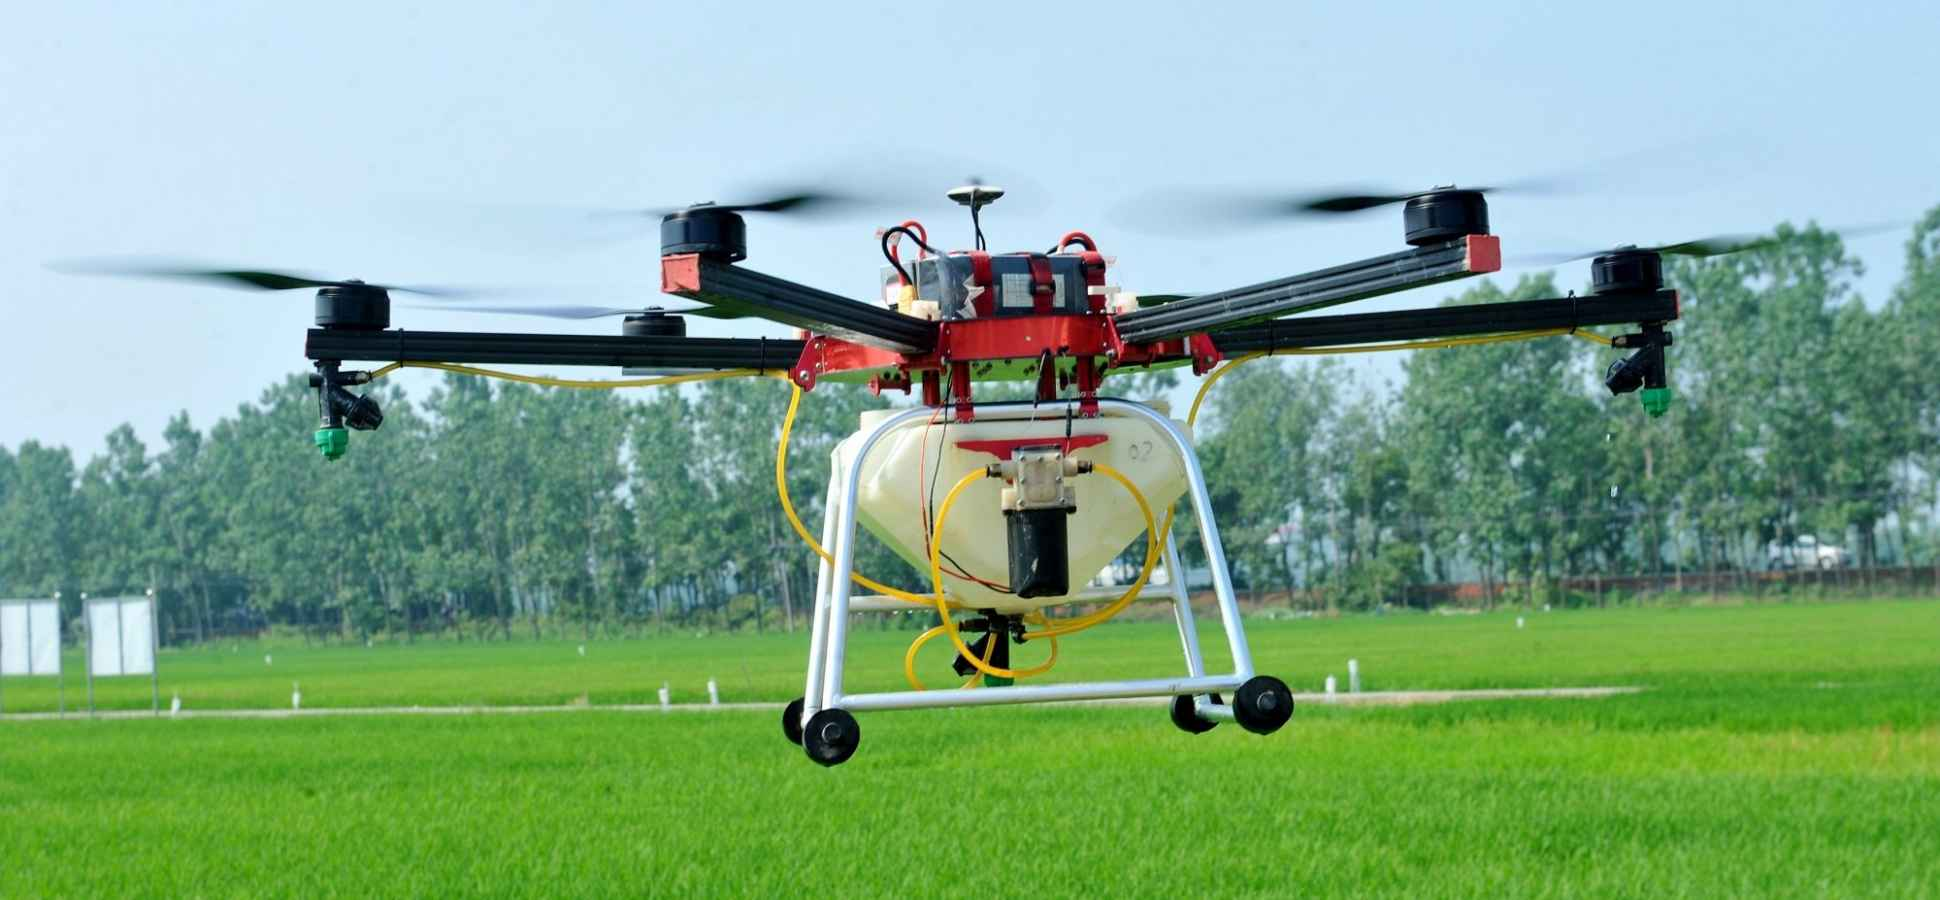 Head of FAA: Drones Are a 'Huge Game-Changer' for the Aviation Industry